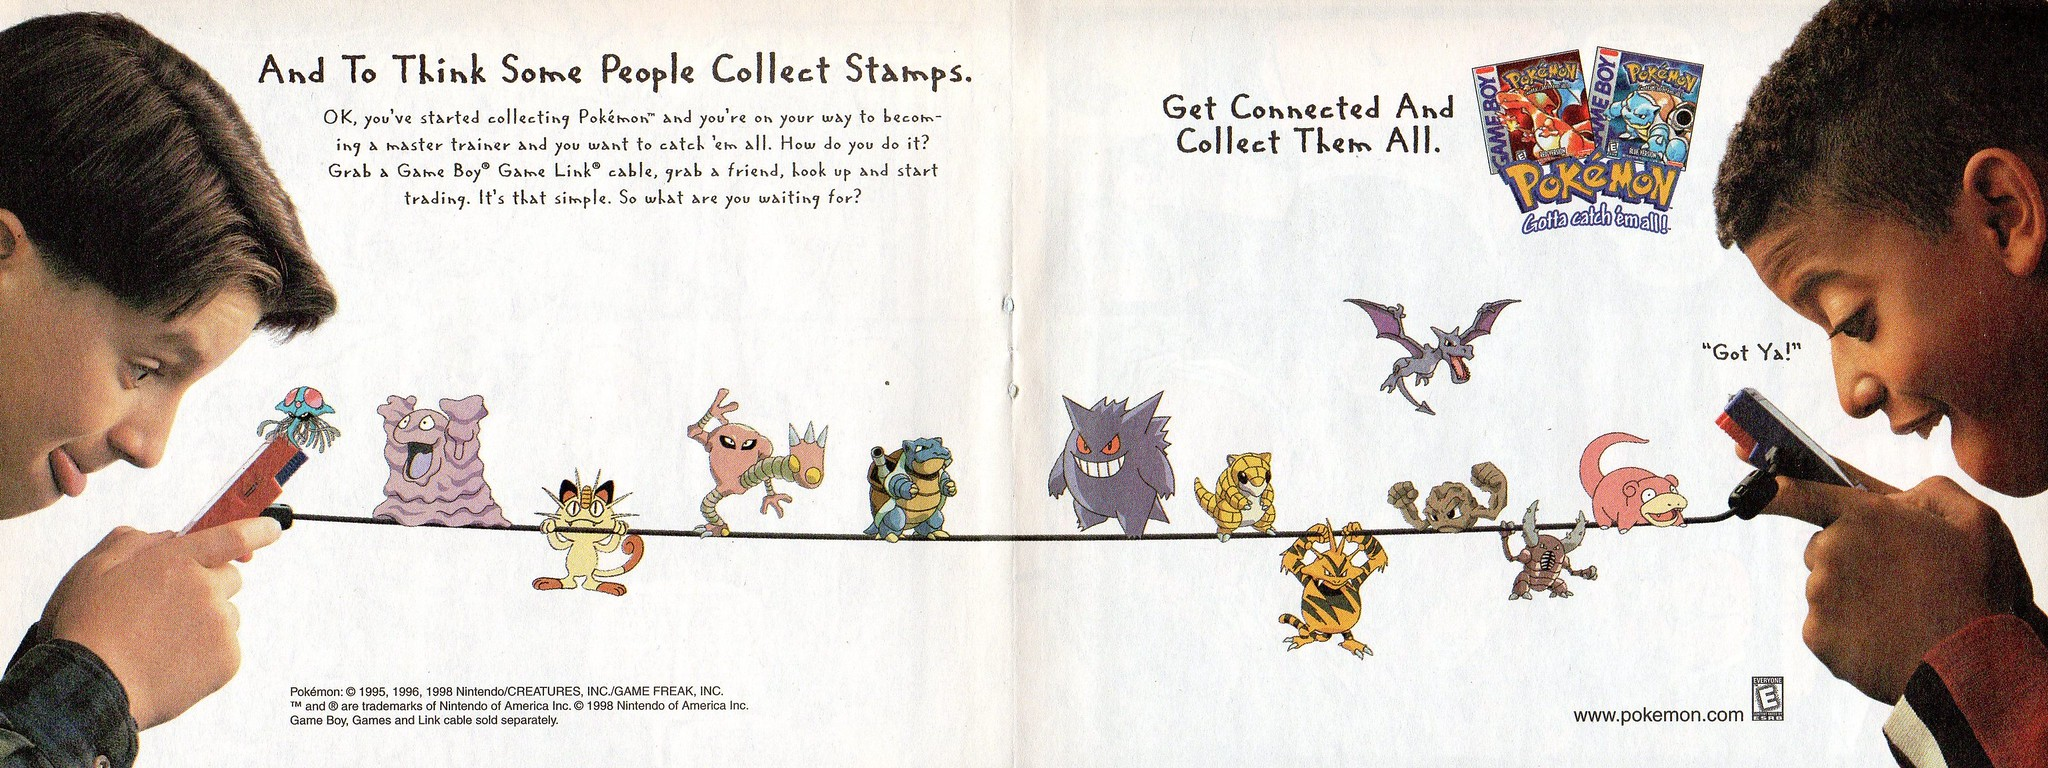 advertisement for Pokémon Red and Blue from 1998